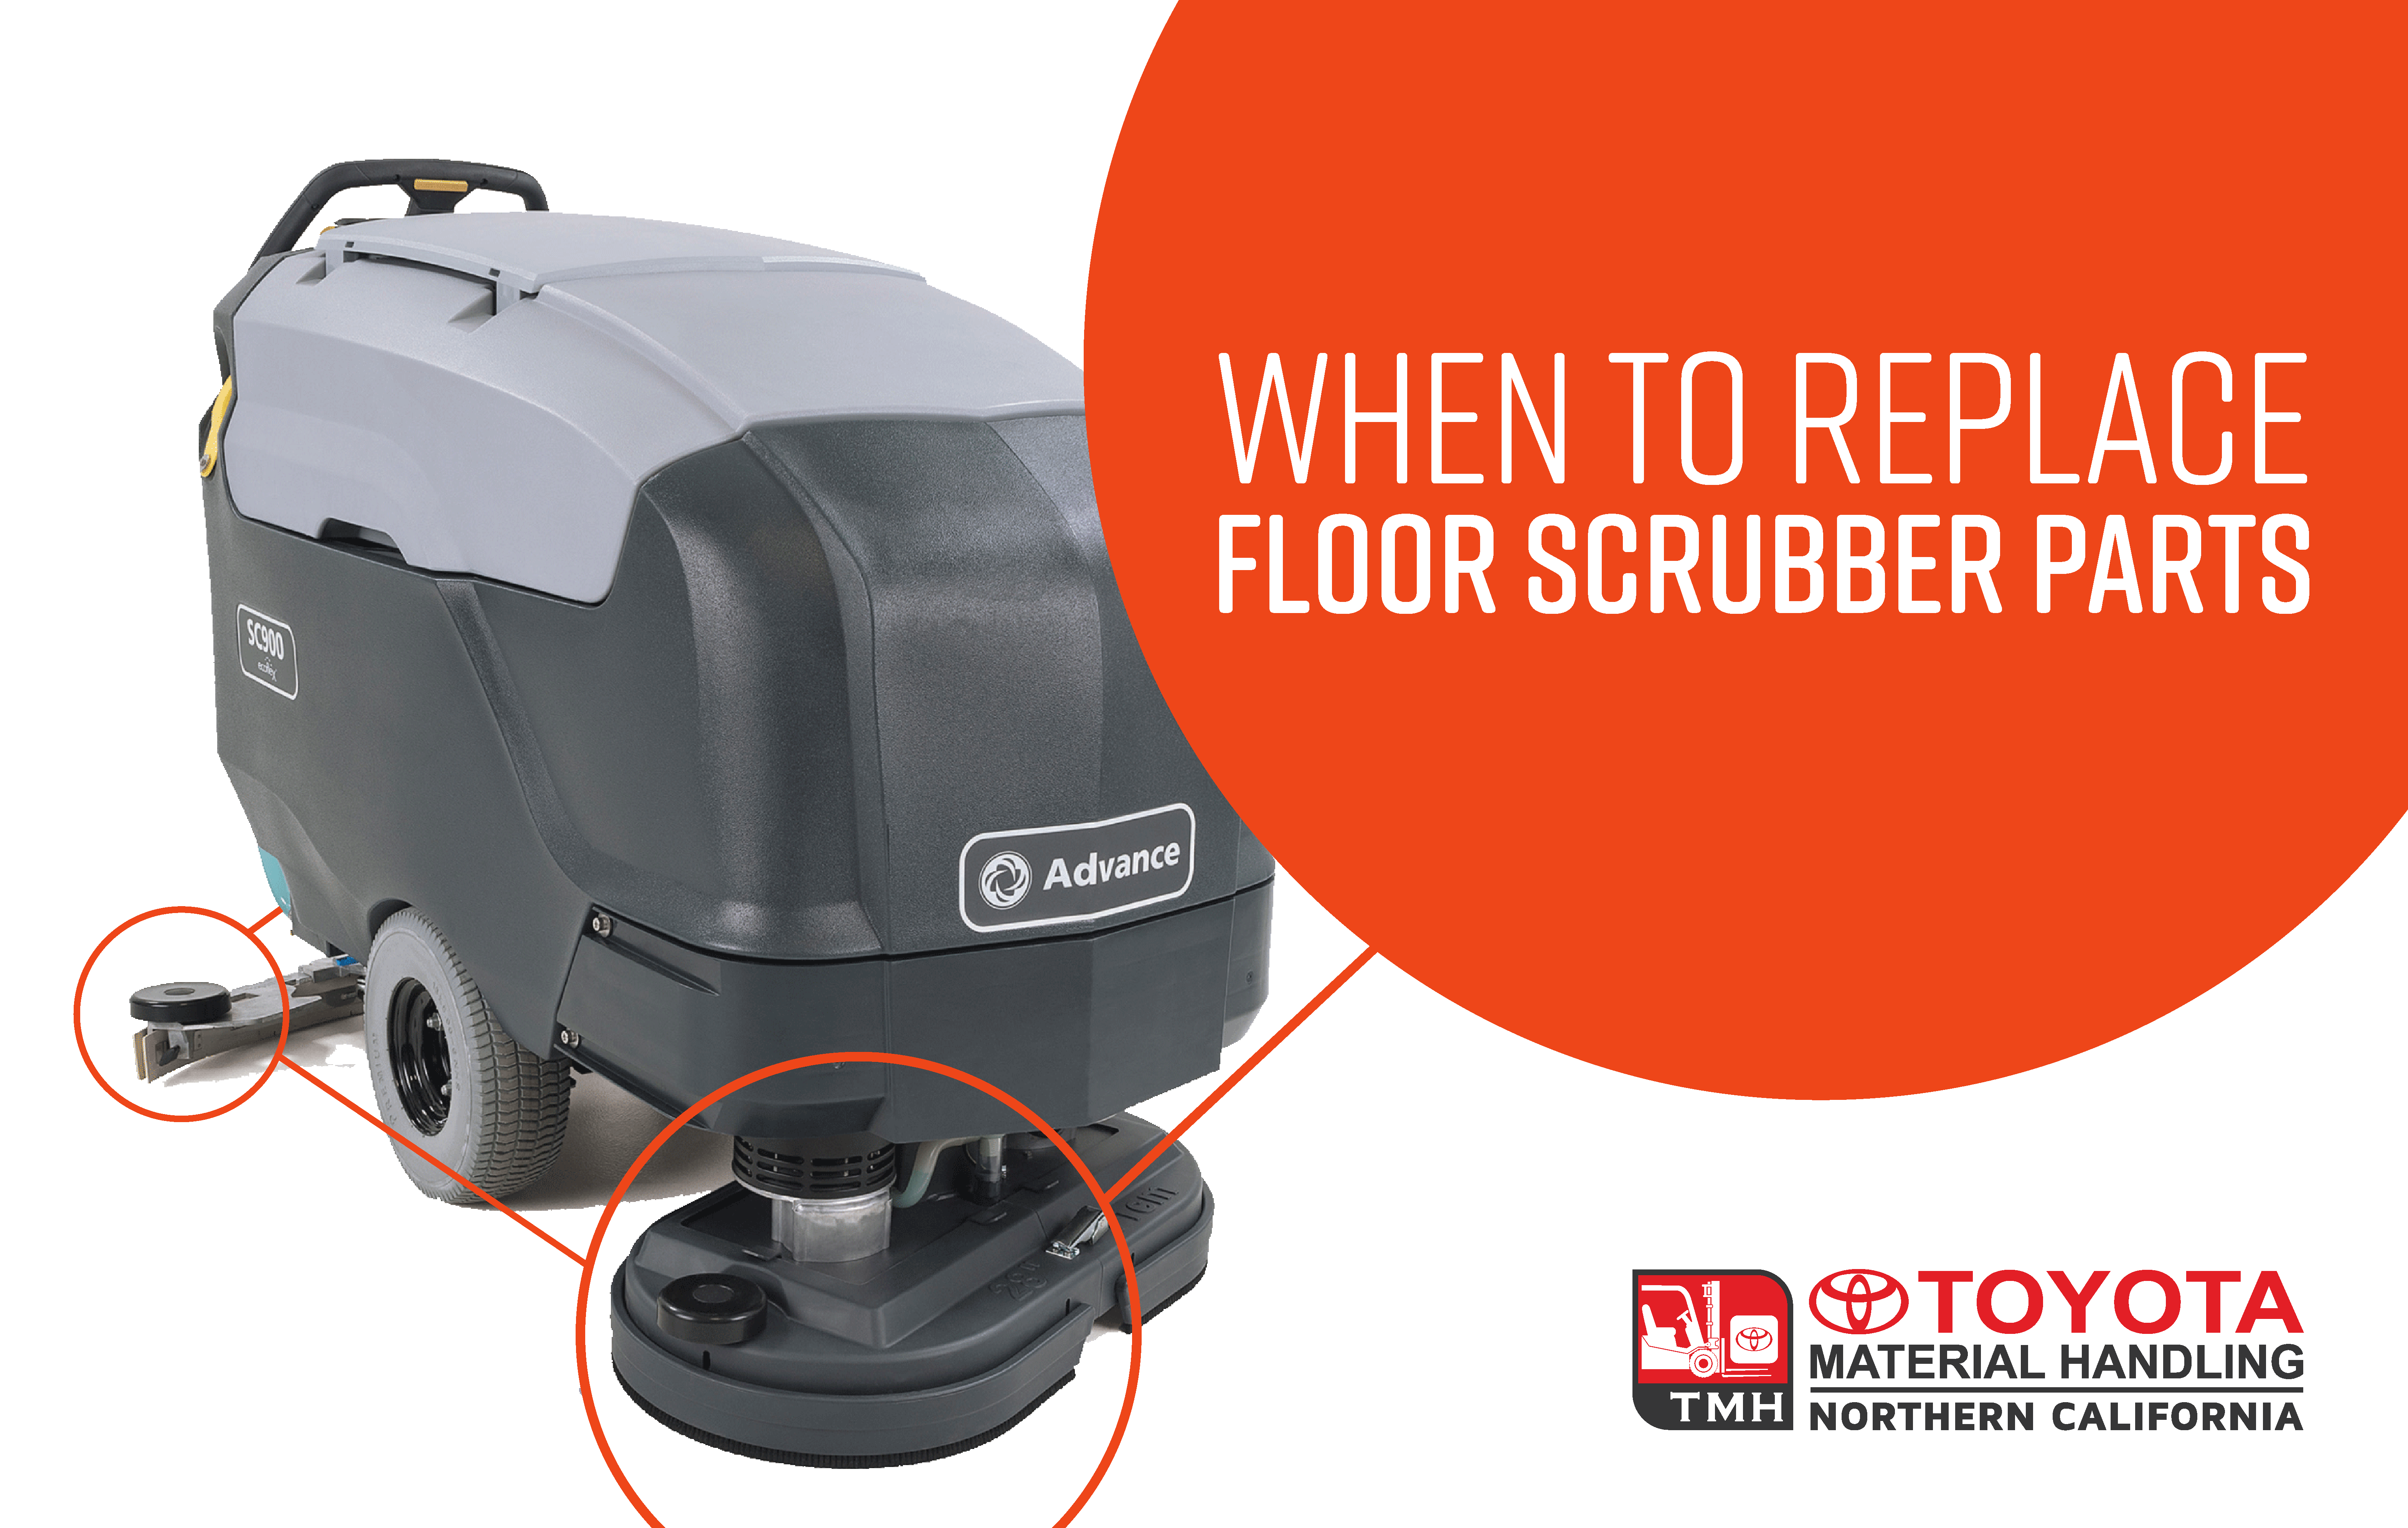 when to replace floor scrubber parts